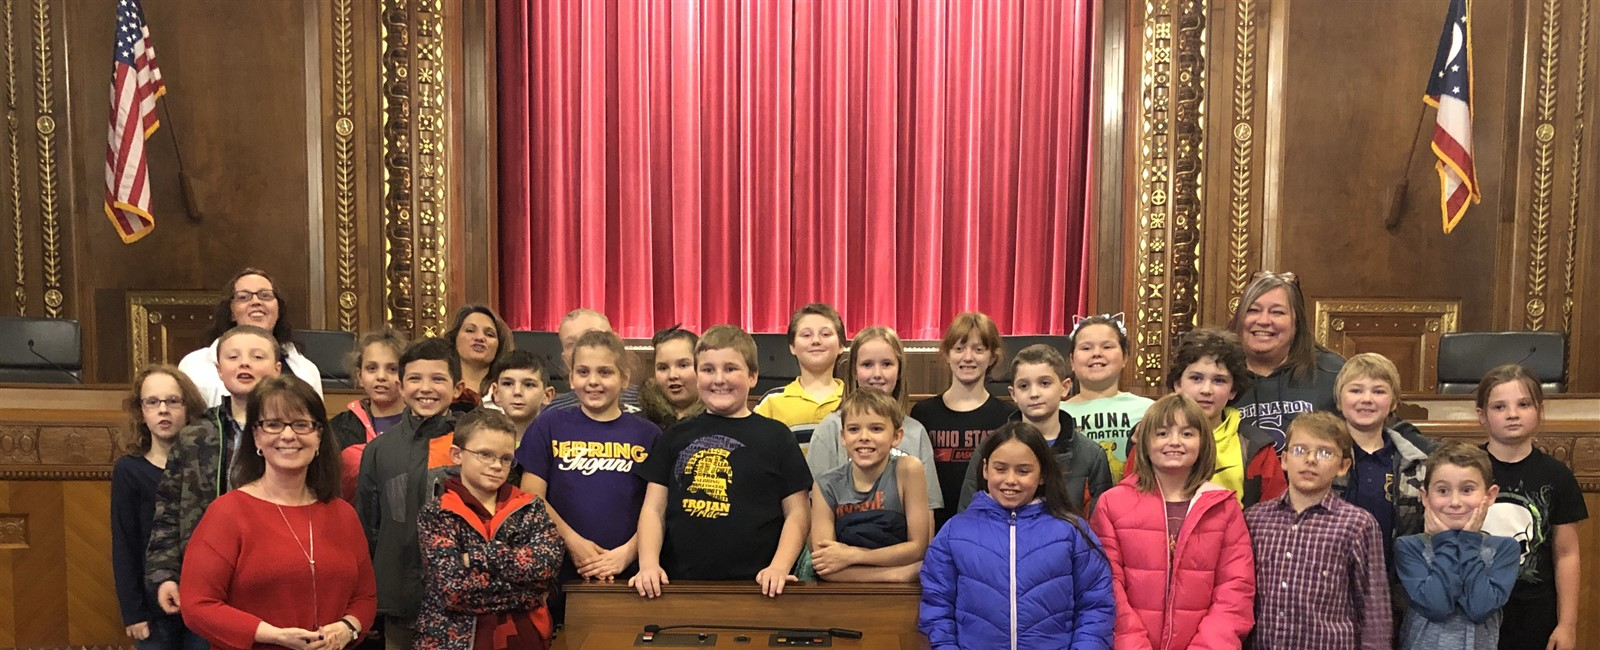 Ohio Supreme Court Justice Judith French took the time to meet B.L. Elementary School students on their tour of the Ohio Supreme Court. Justice French is a Sebring alumna.